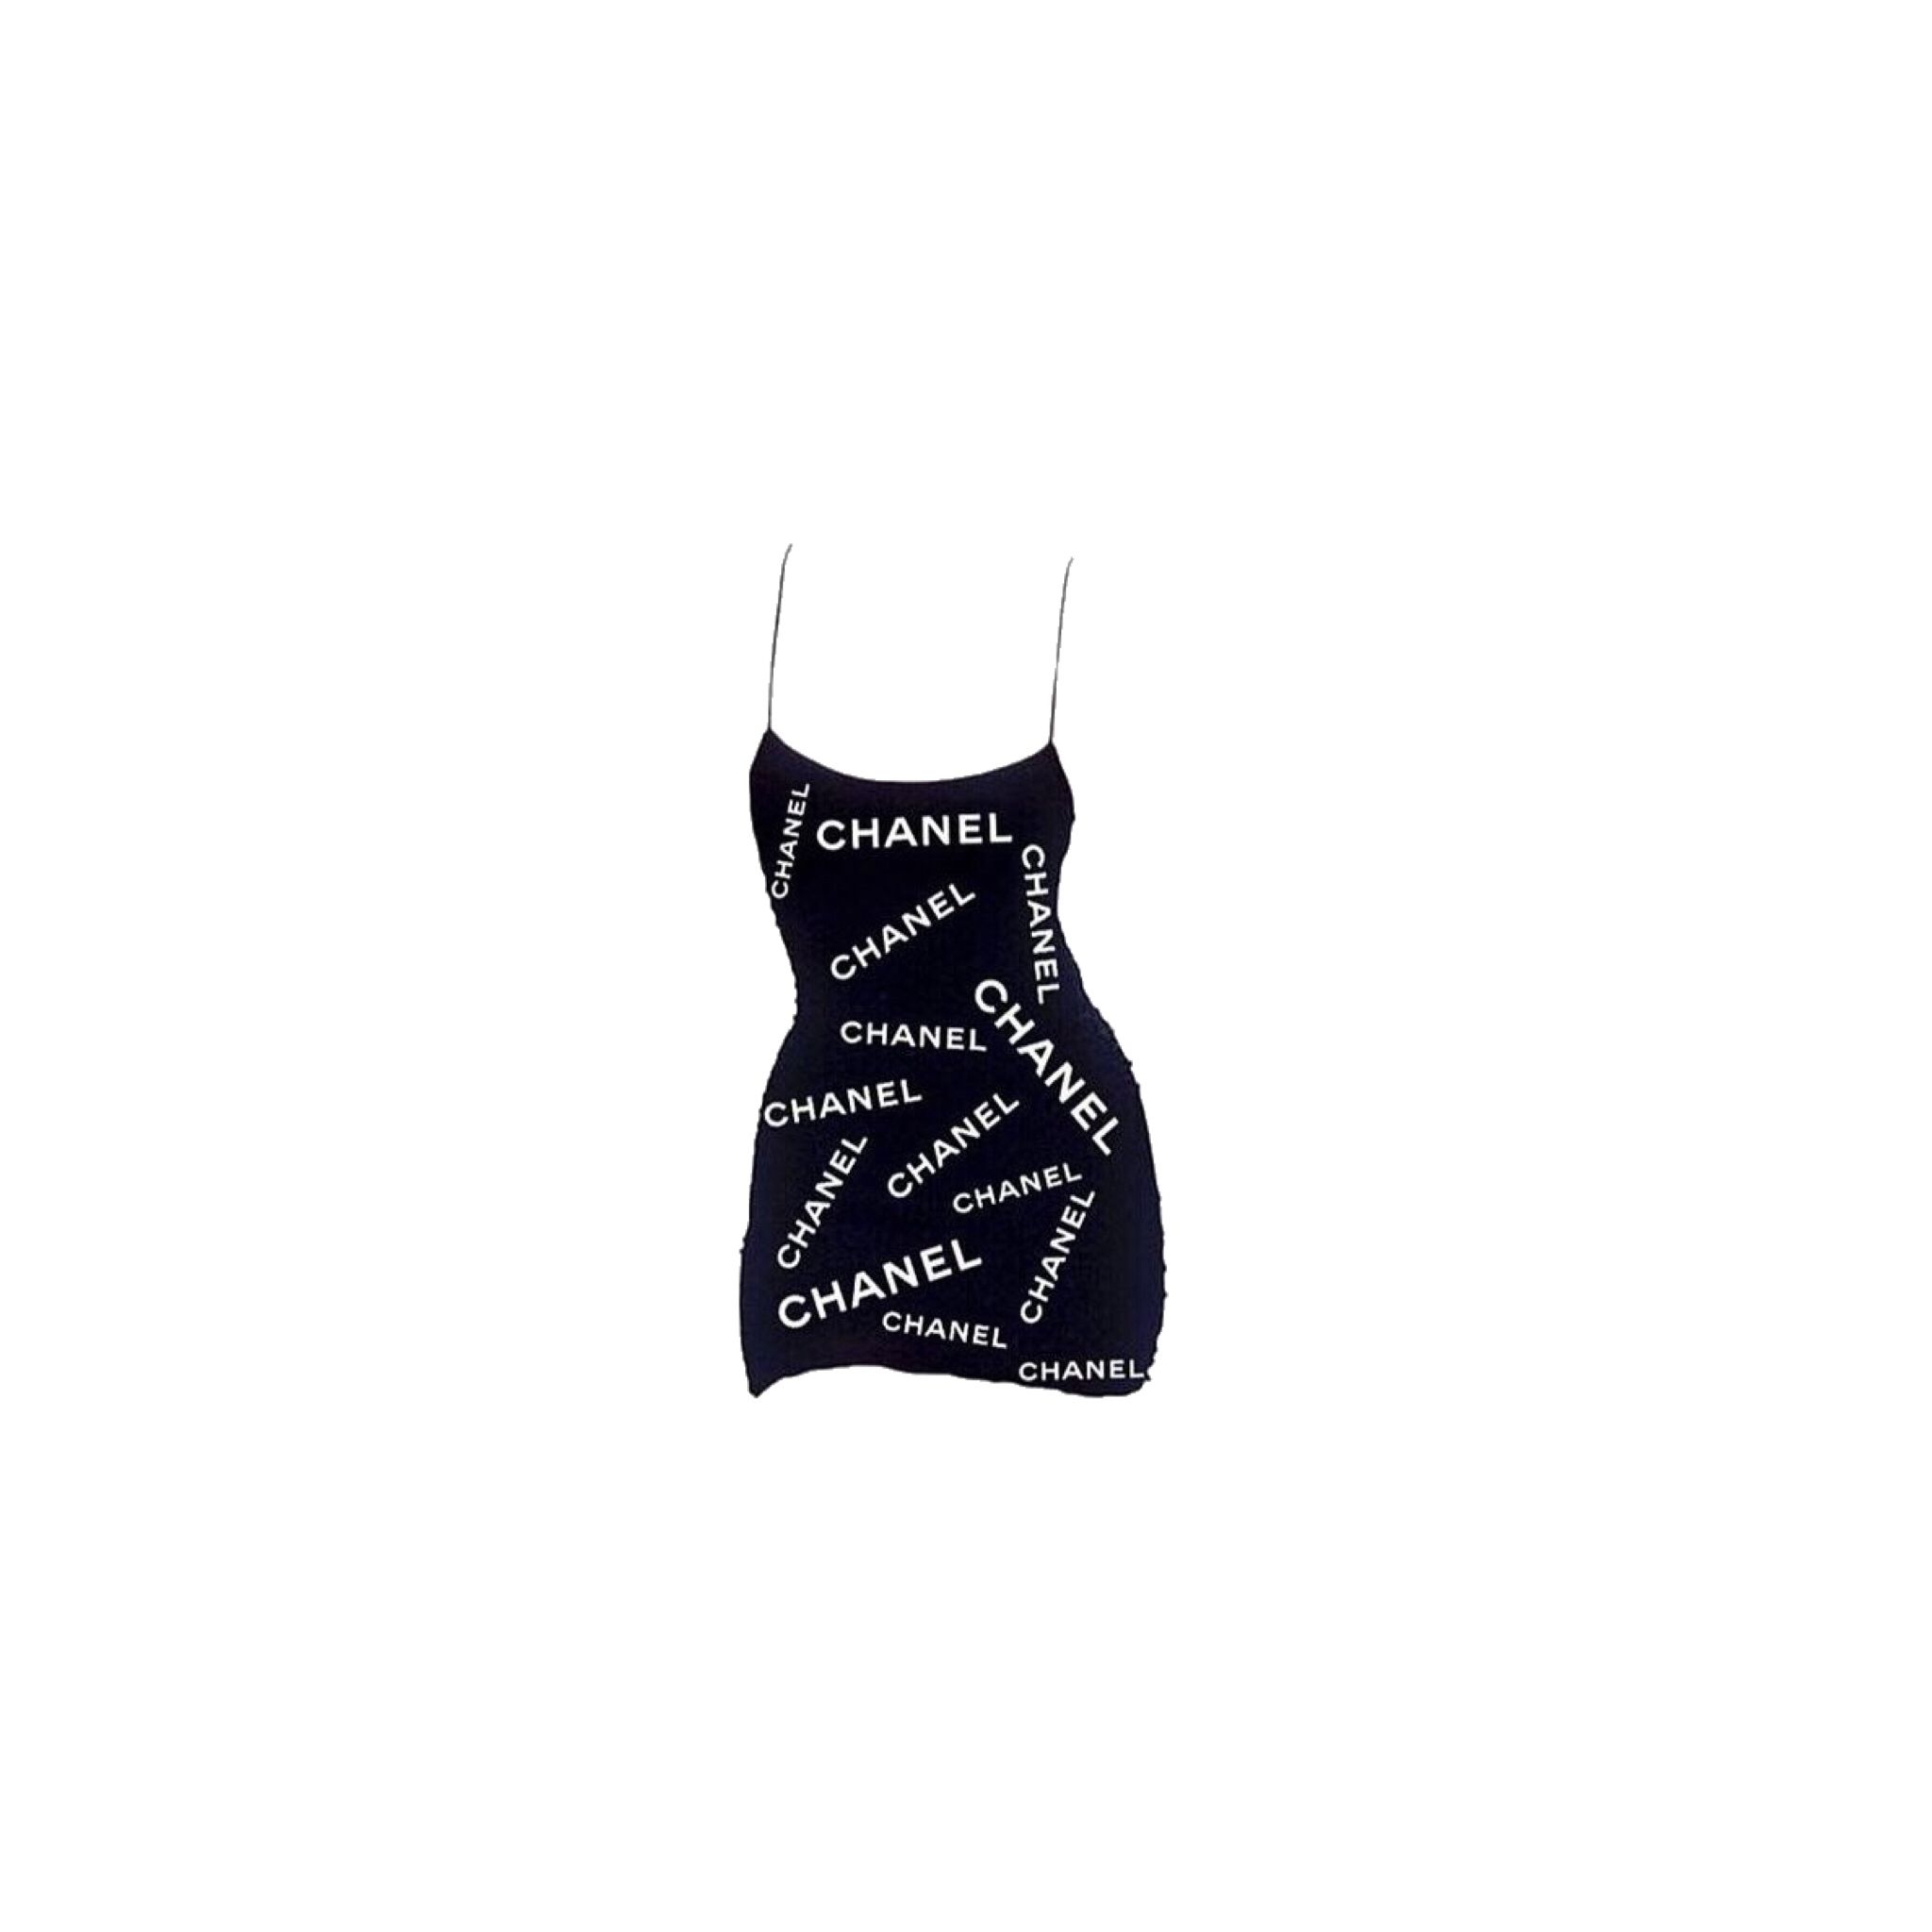 Chanel Dress Png Dress Png Chanel Dress Fashion Outfits